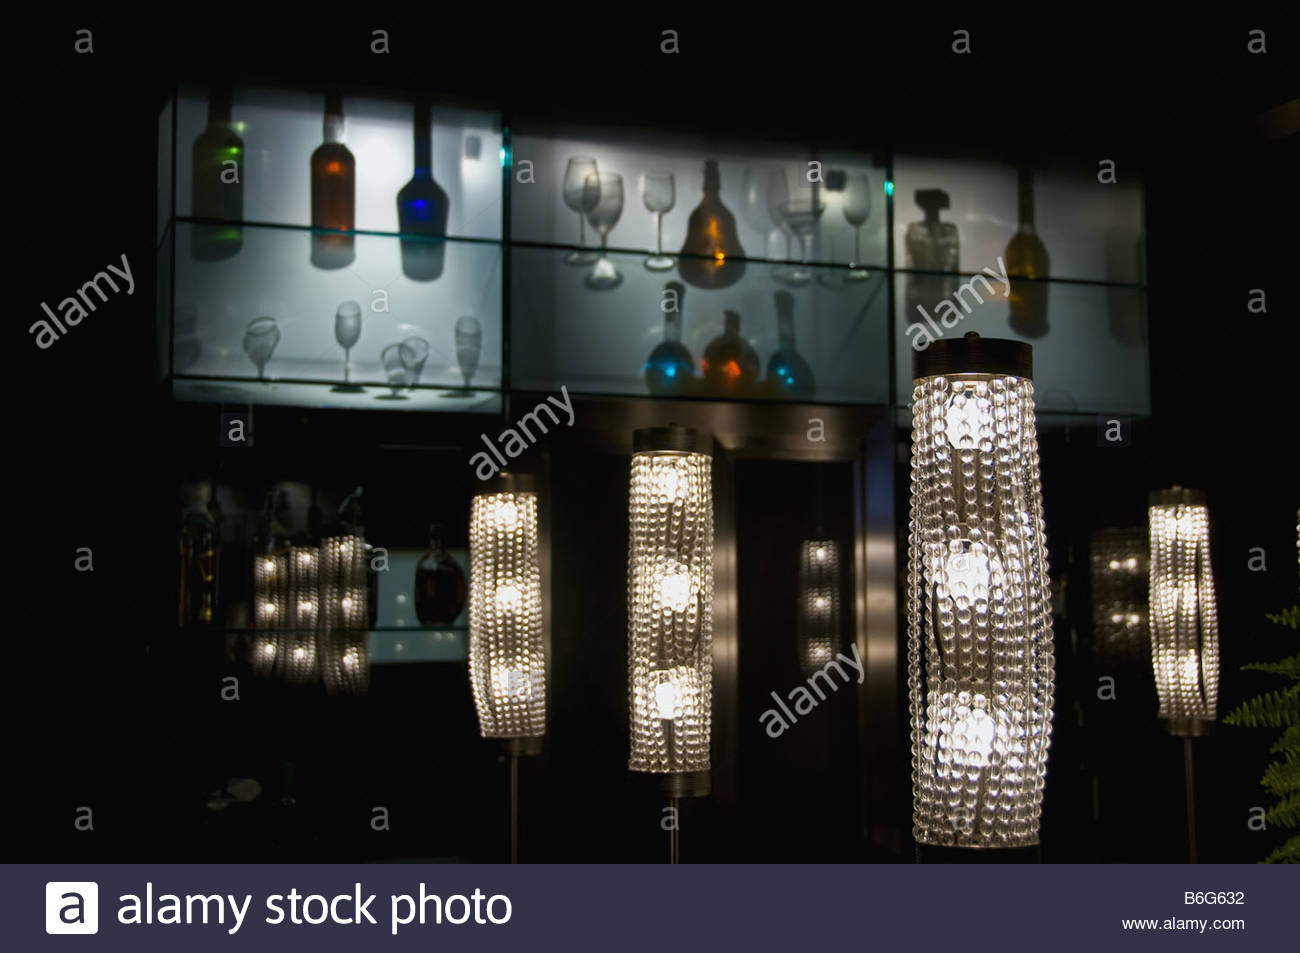 Design lamps and illumination effects with bottles and glasses. - Stock Image